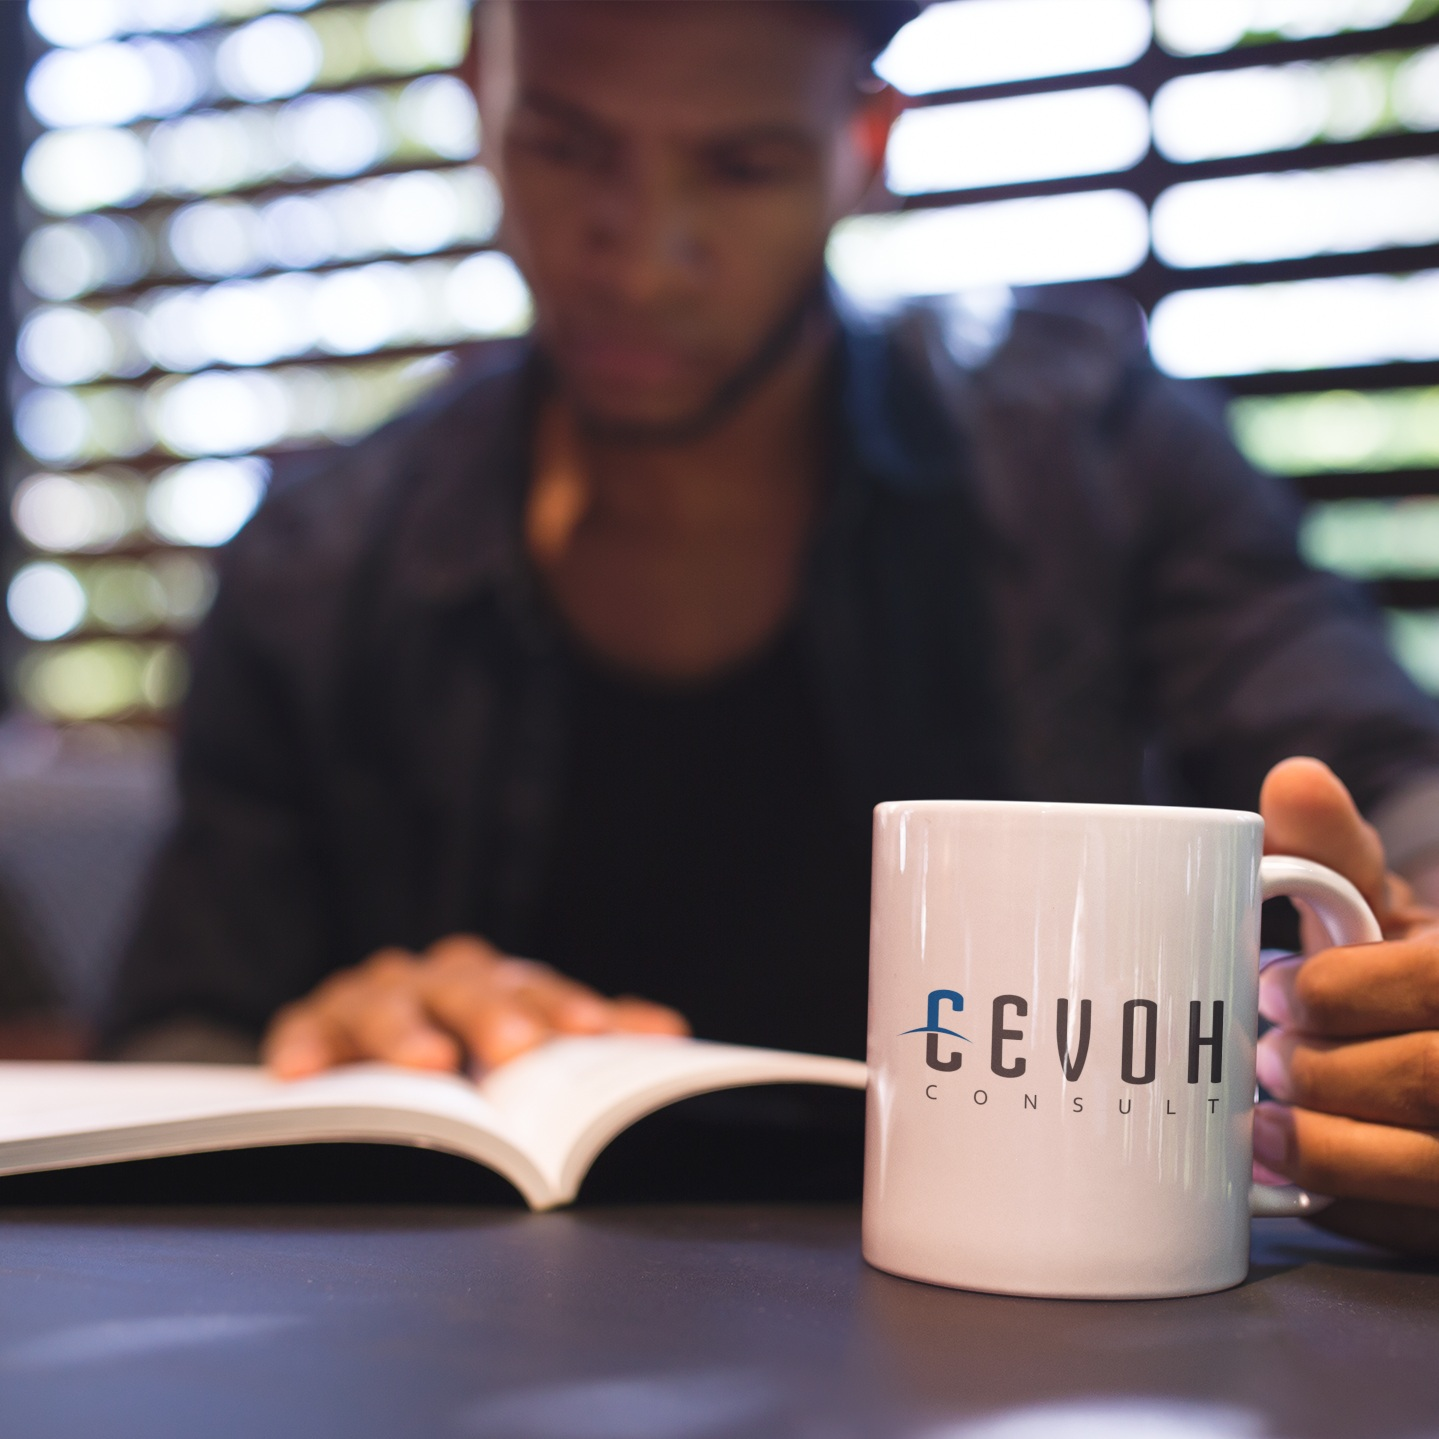 man-reading-a-book-and-holding-a-coffee-cup-mockup-a12296.jpg